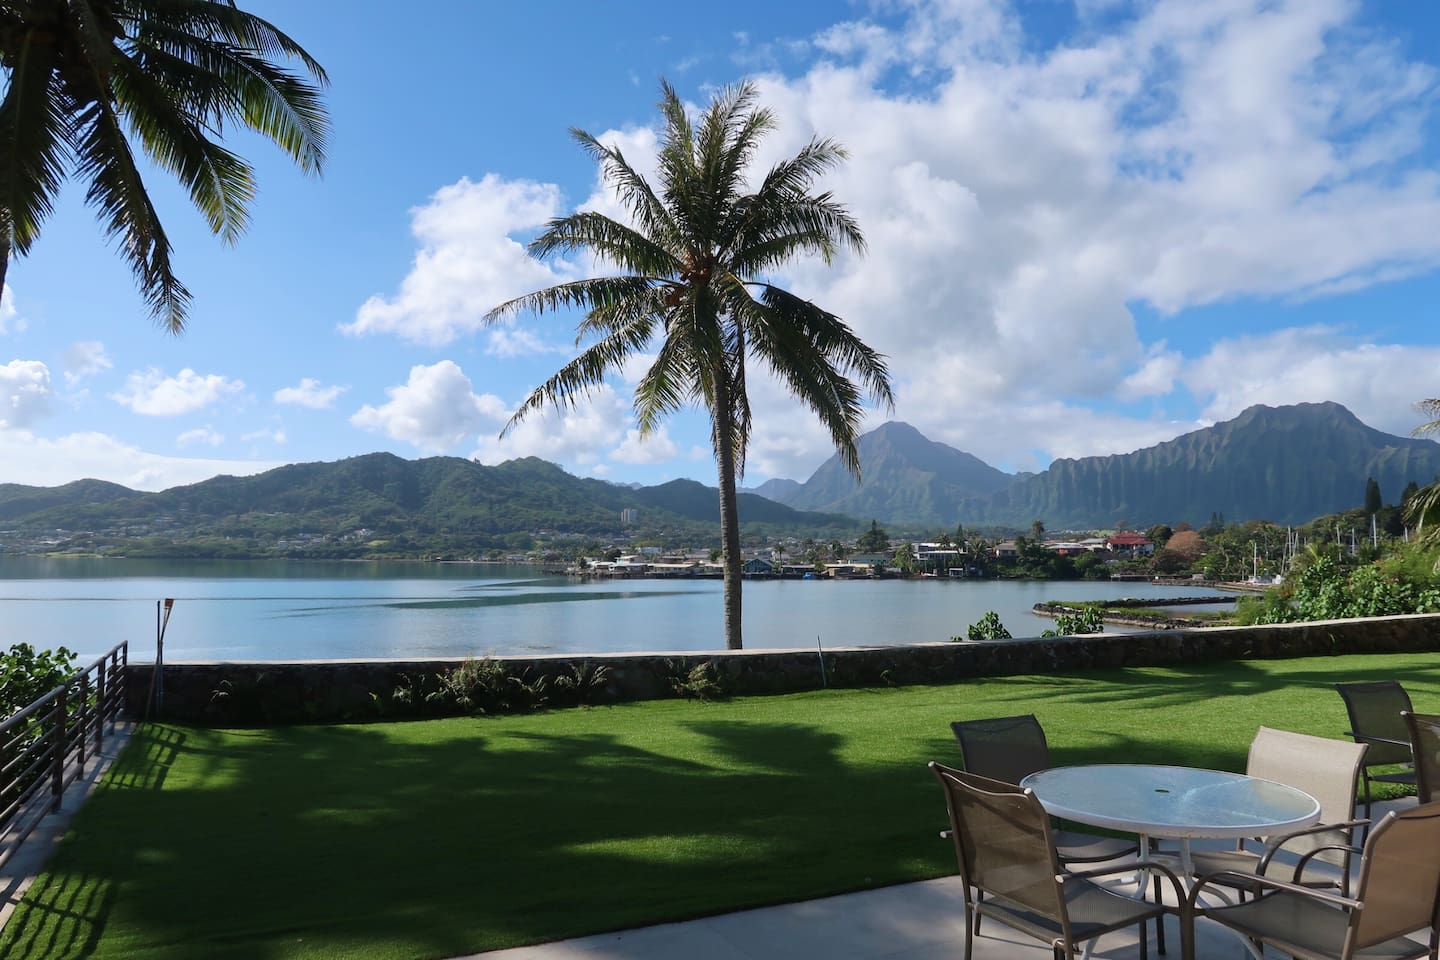 Look at those views from the backyard. There is no doubt that you are in Paradise!